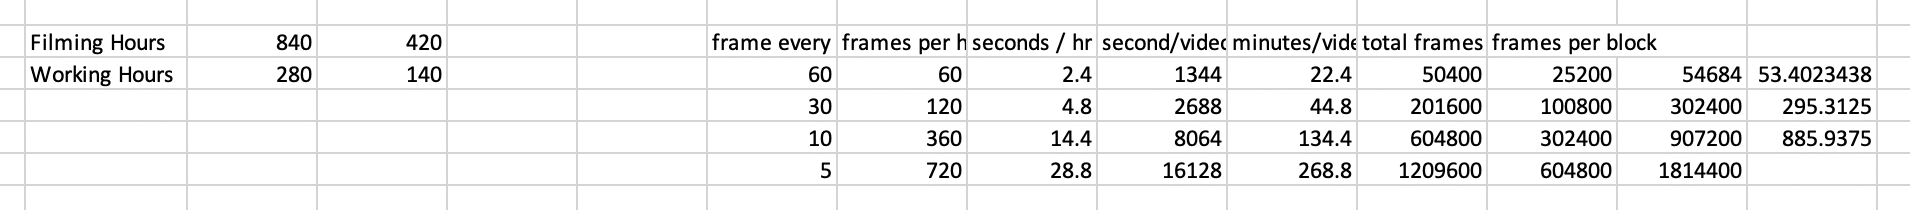 An example of our data management prediction calculations for the GoPro camera